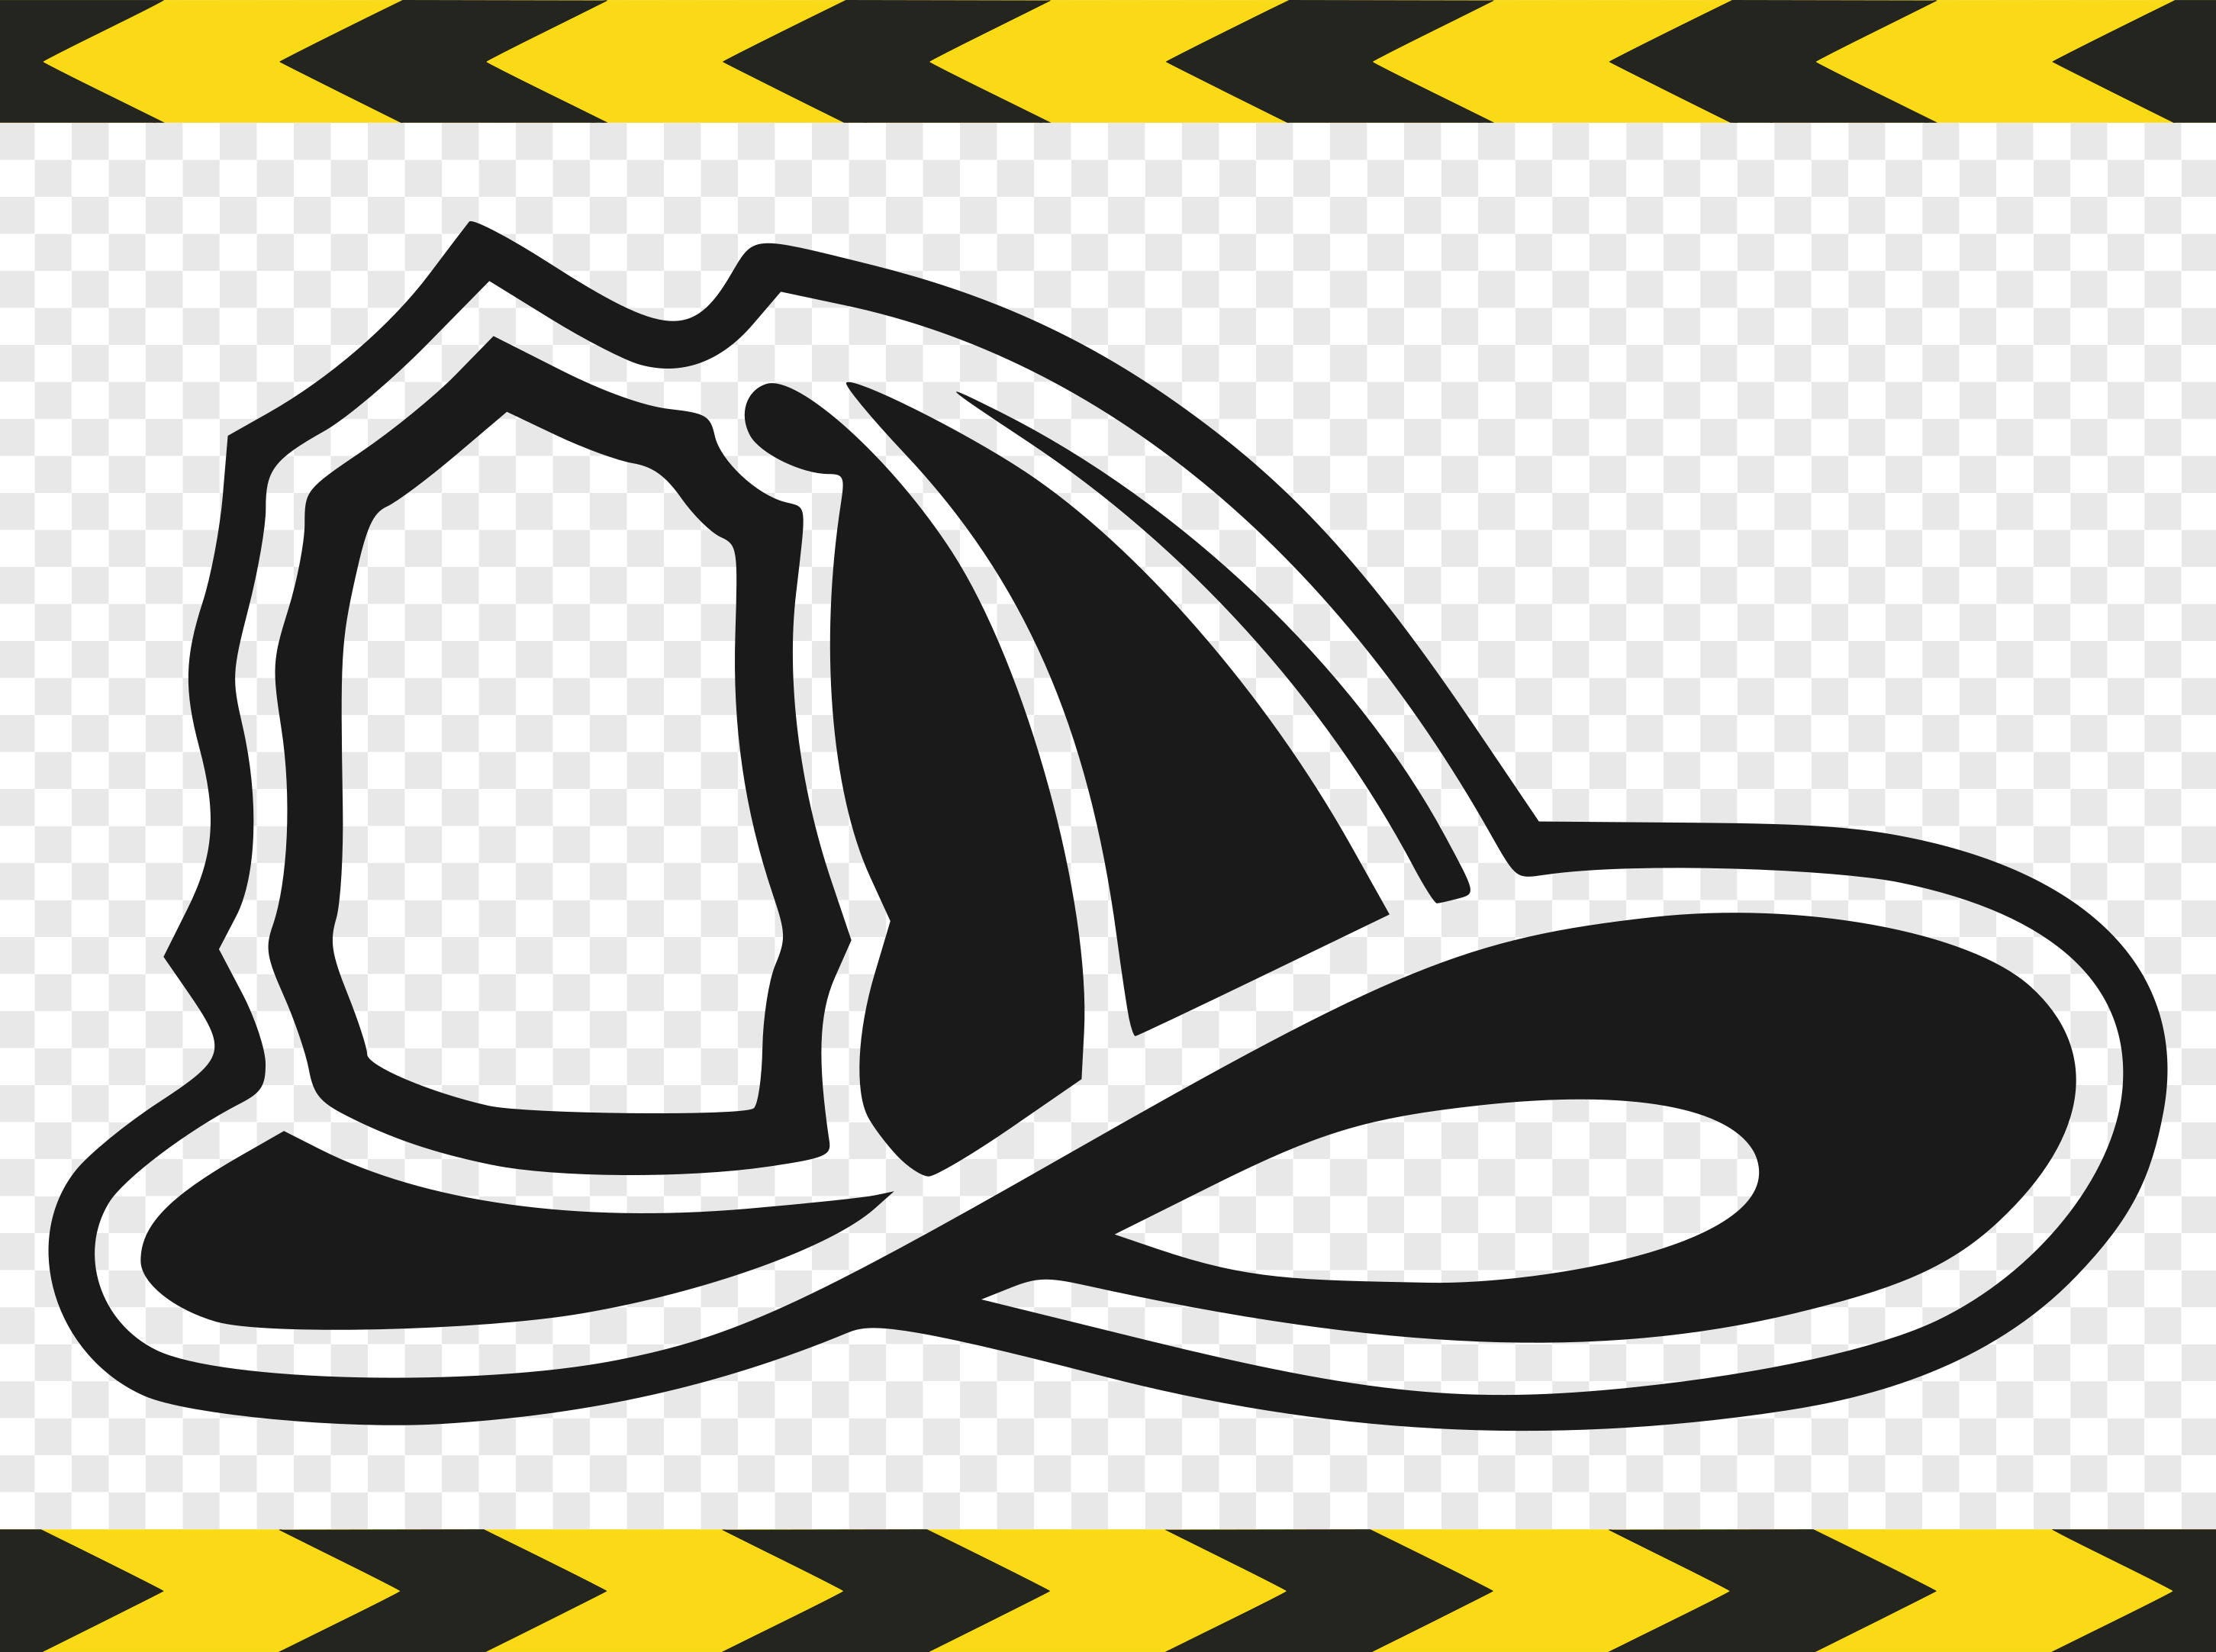 Firefighter hat fireman helmet svg clipart decal commercial zoom buycottarizona Choice Image